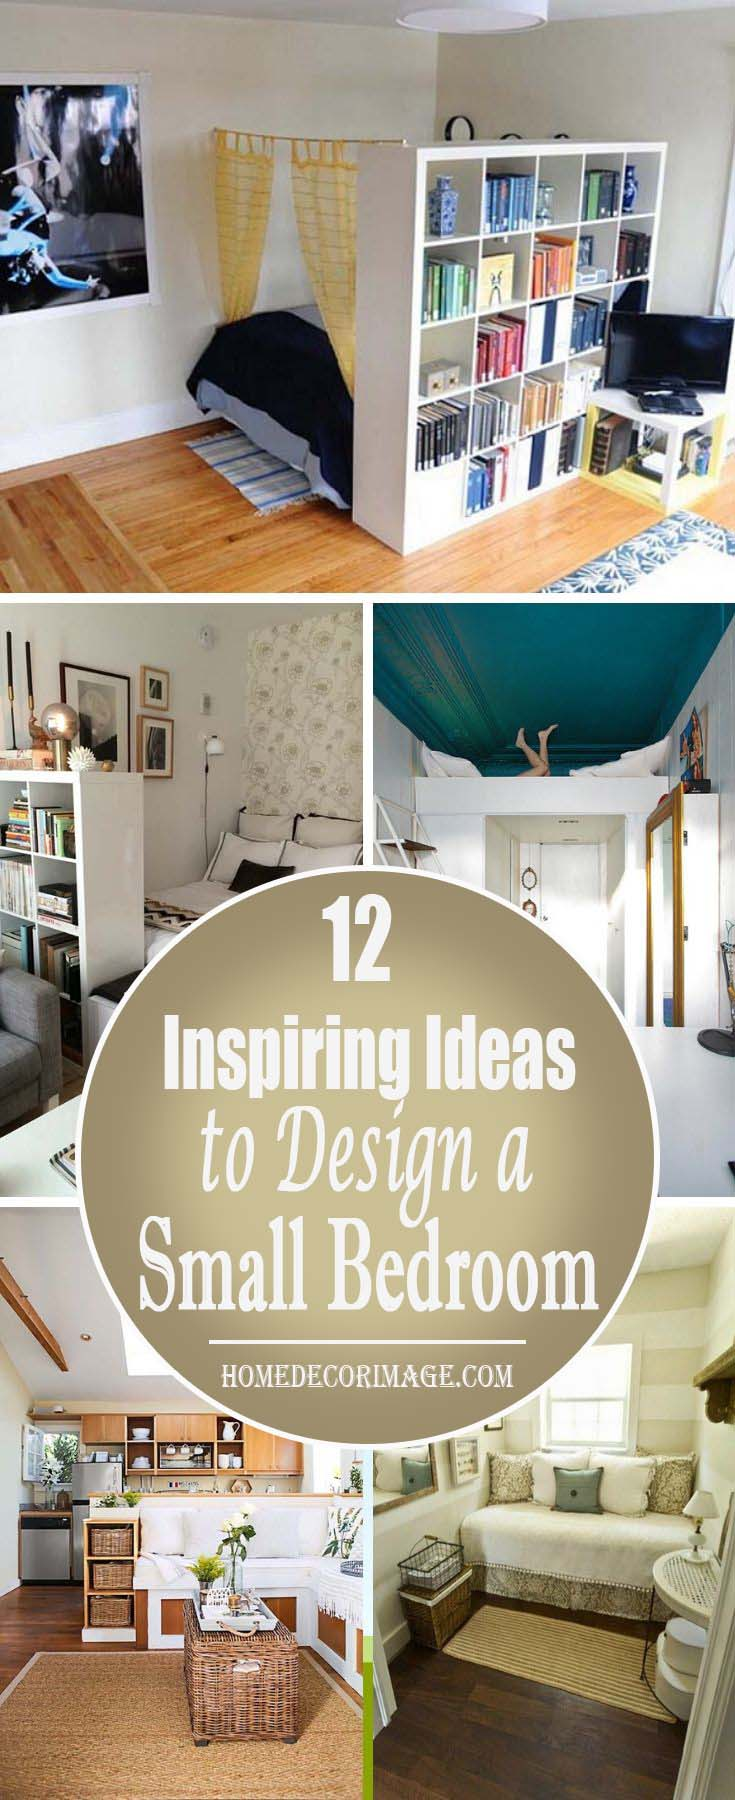 12 Inspiring Ideas to Design a Small Bedroom #small bedroom #bedroom #interior #homedecorimage